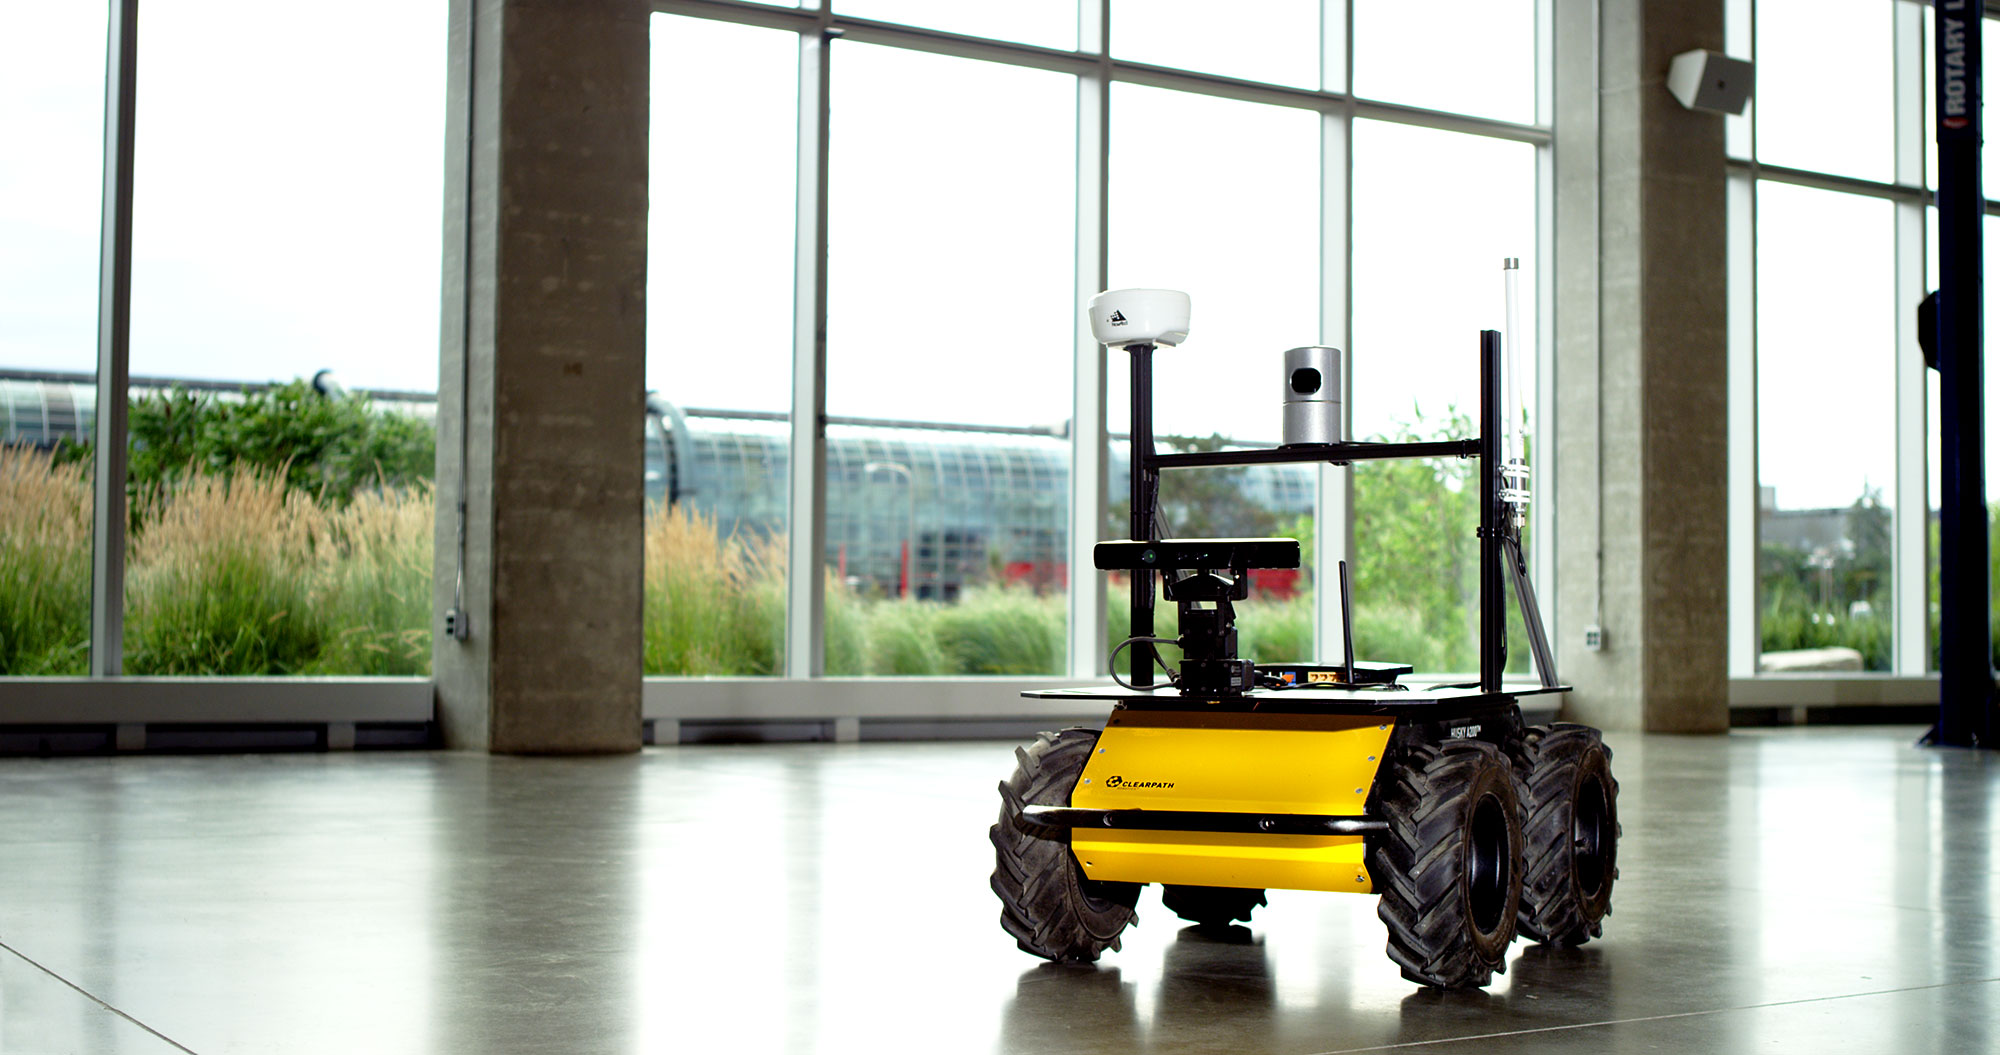 Husky Ugv Outdoor Field Research Robot By Clearpath Wiring Diagram Easy Simple Routing Starter Relay With Sick Lidar